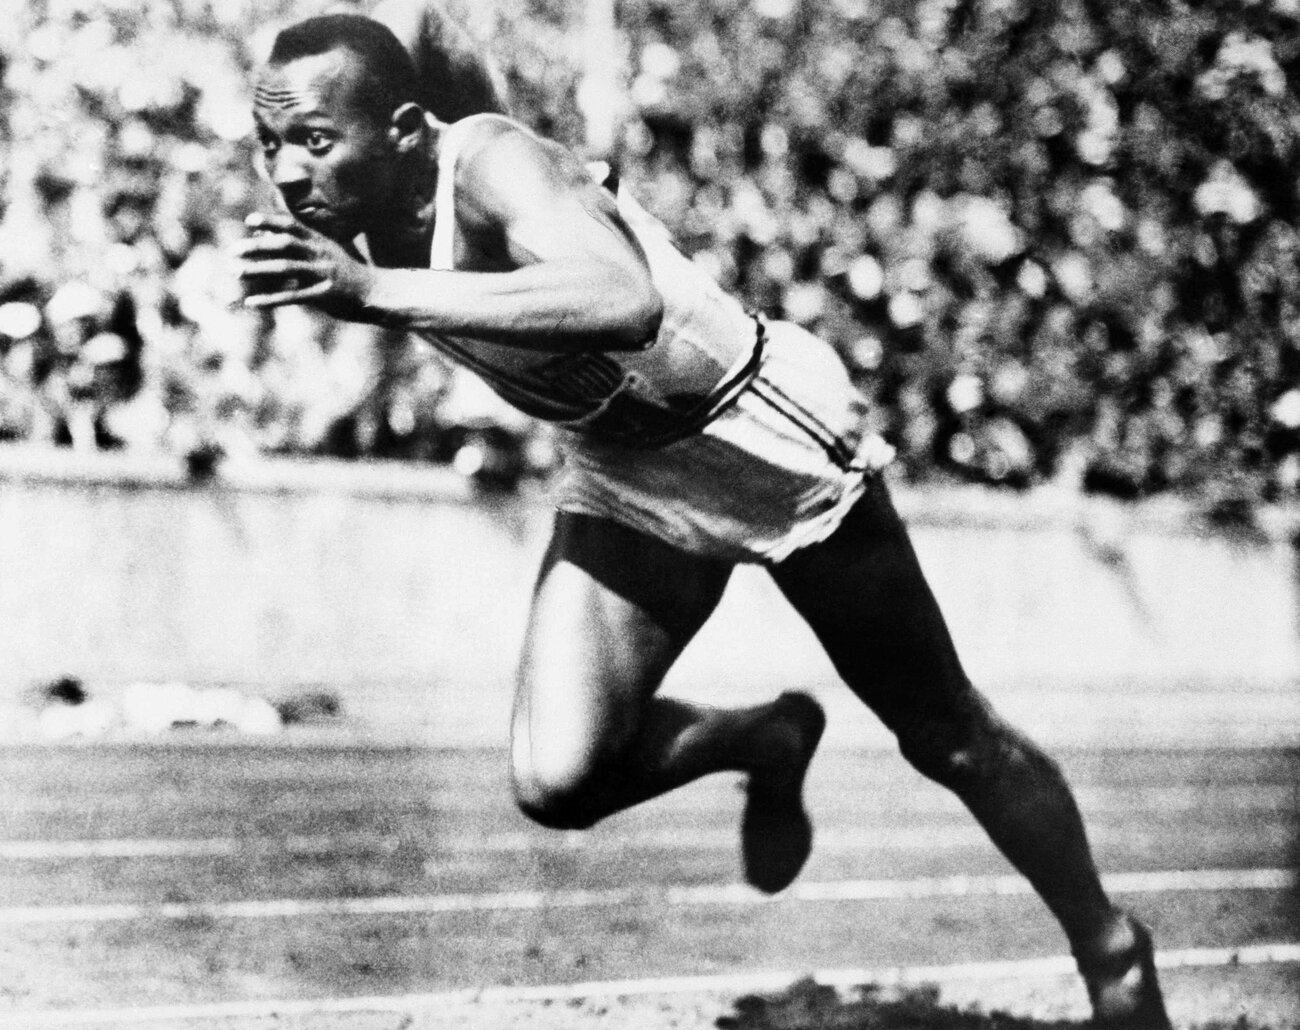 Jesse Owens competing in one of the heats of the 200-meter run at the 1936 Olympic Games in Berlin. Owens won four gold medals at games in front of Hitler. (AP)